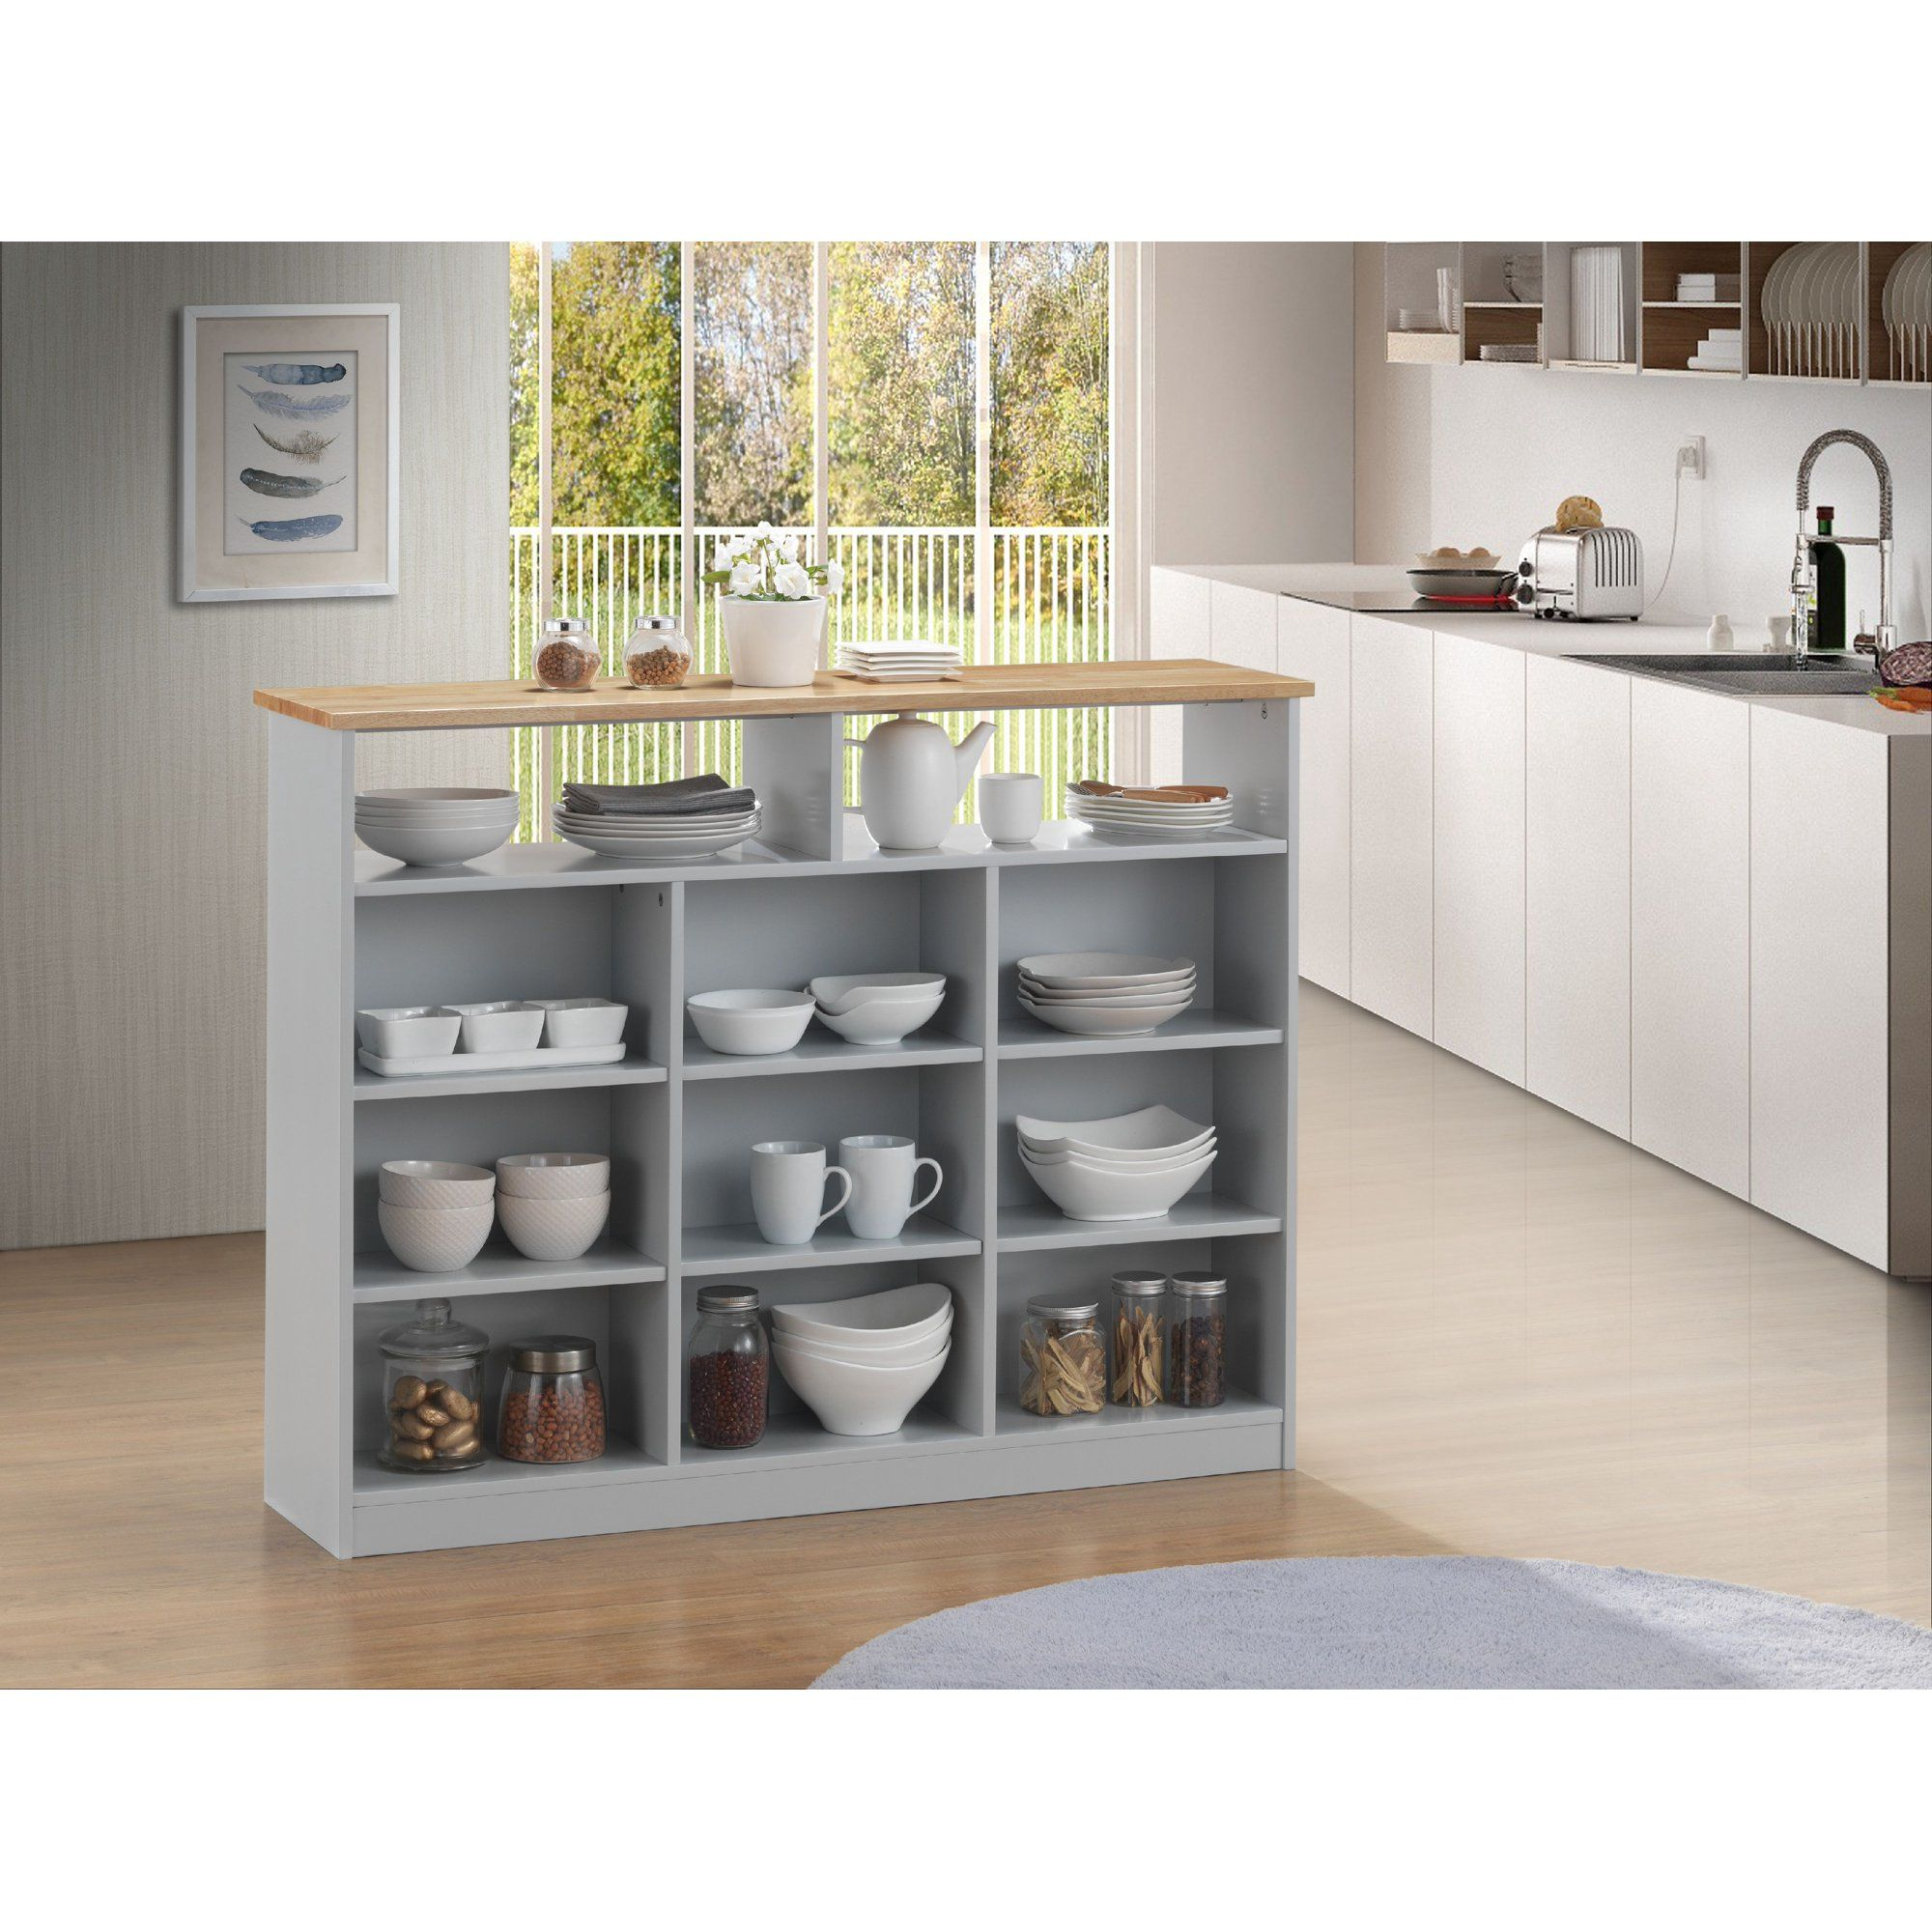 Acme Jorim Kitchen Cart With Wooden Top In Natural And Gray Walmart Com In 2020 Small Apartment Kitchen Portable Kitchen Island Kitchen Cart